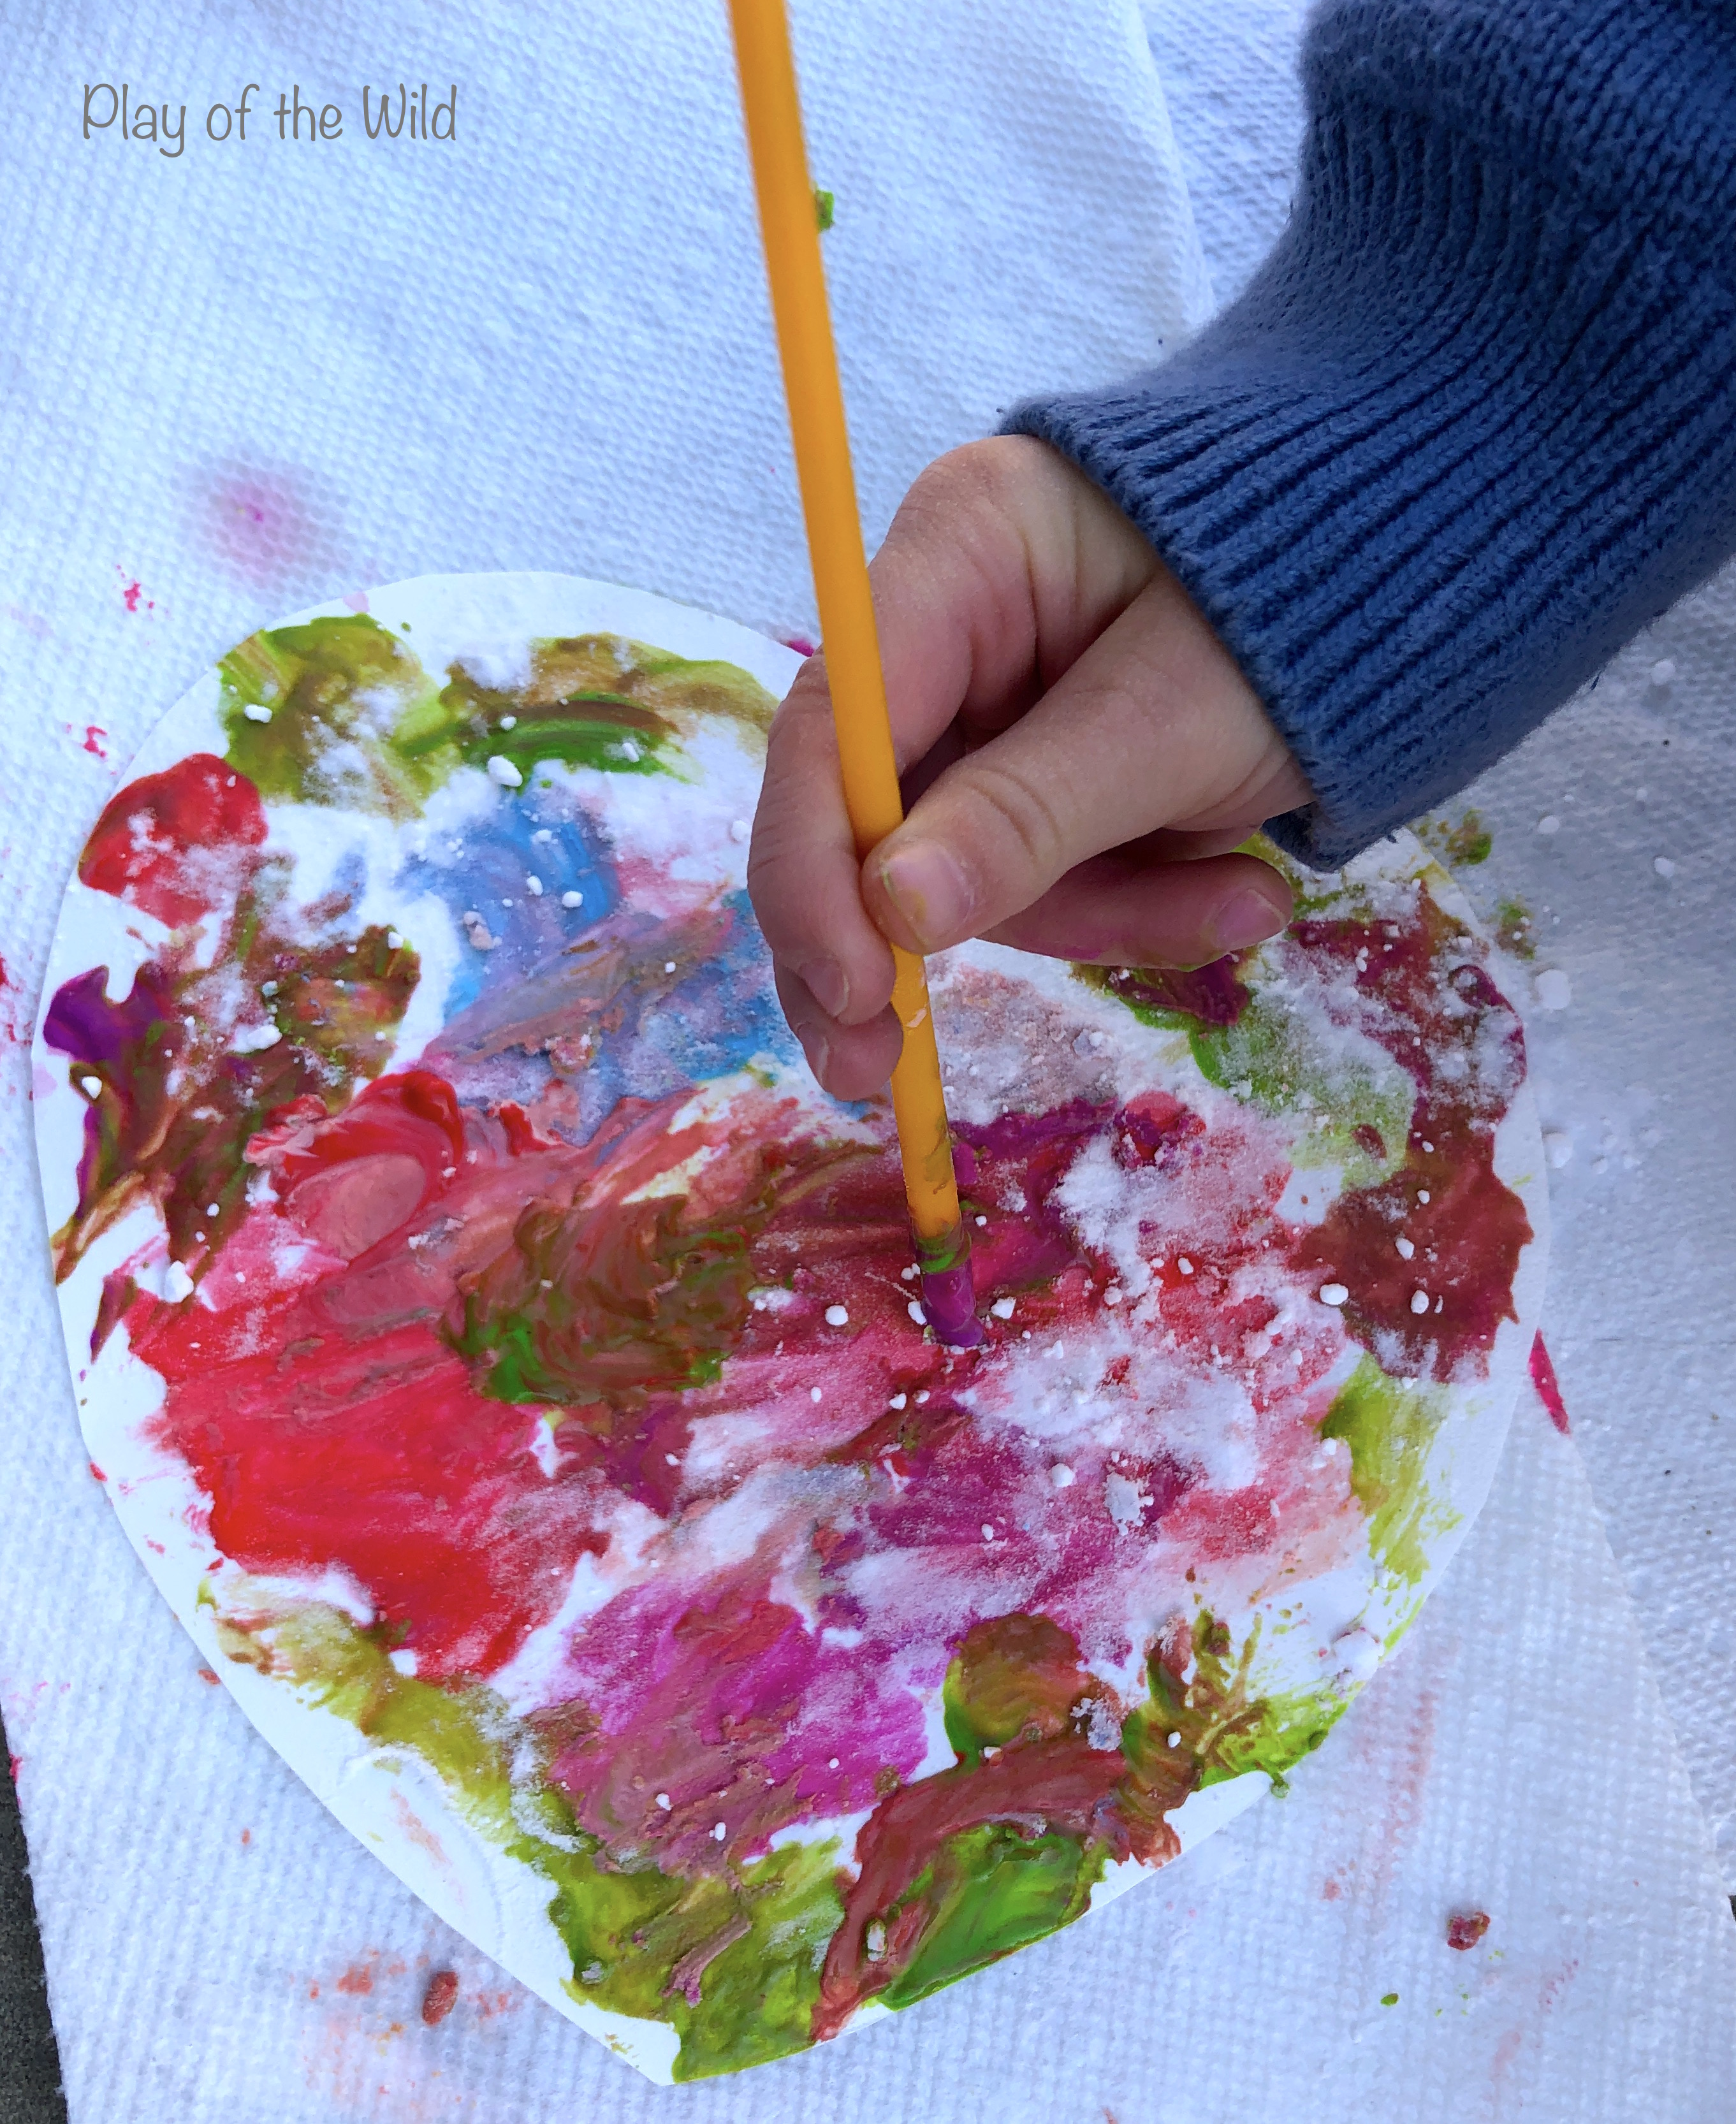 valentines art for kids. painting a heart.